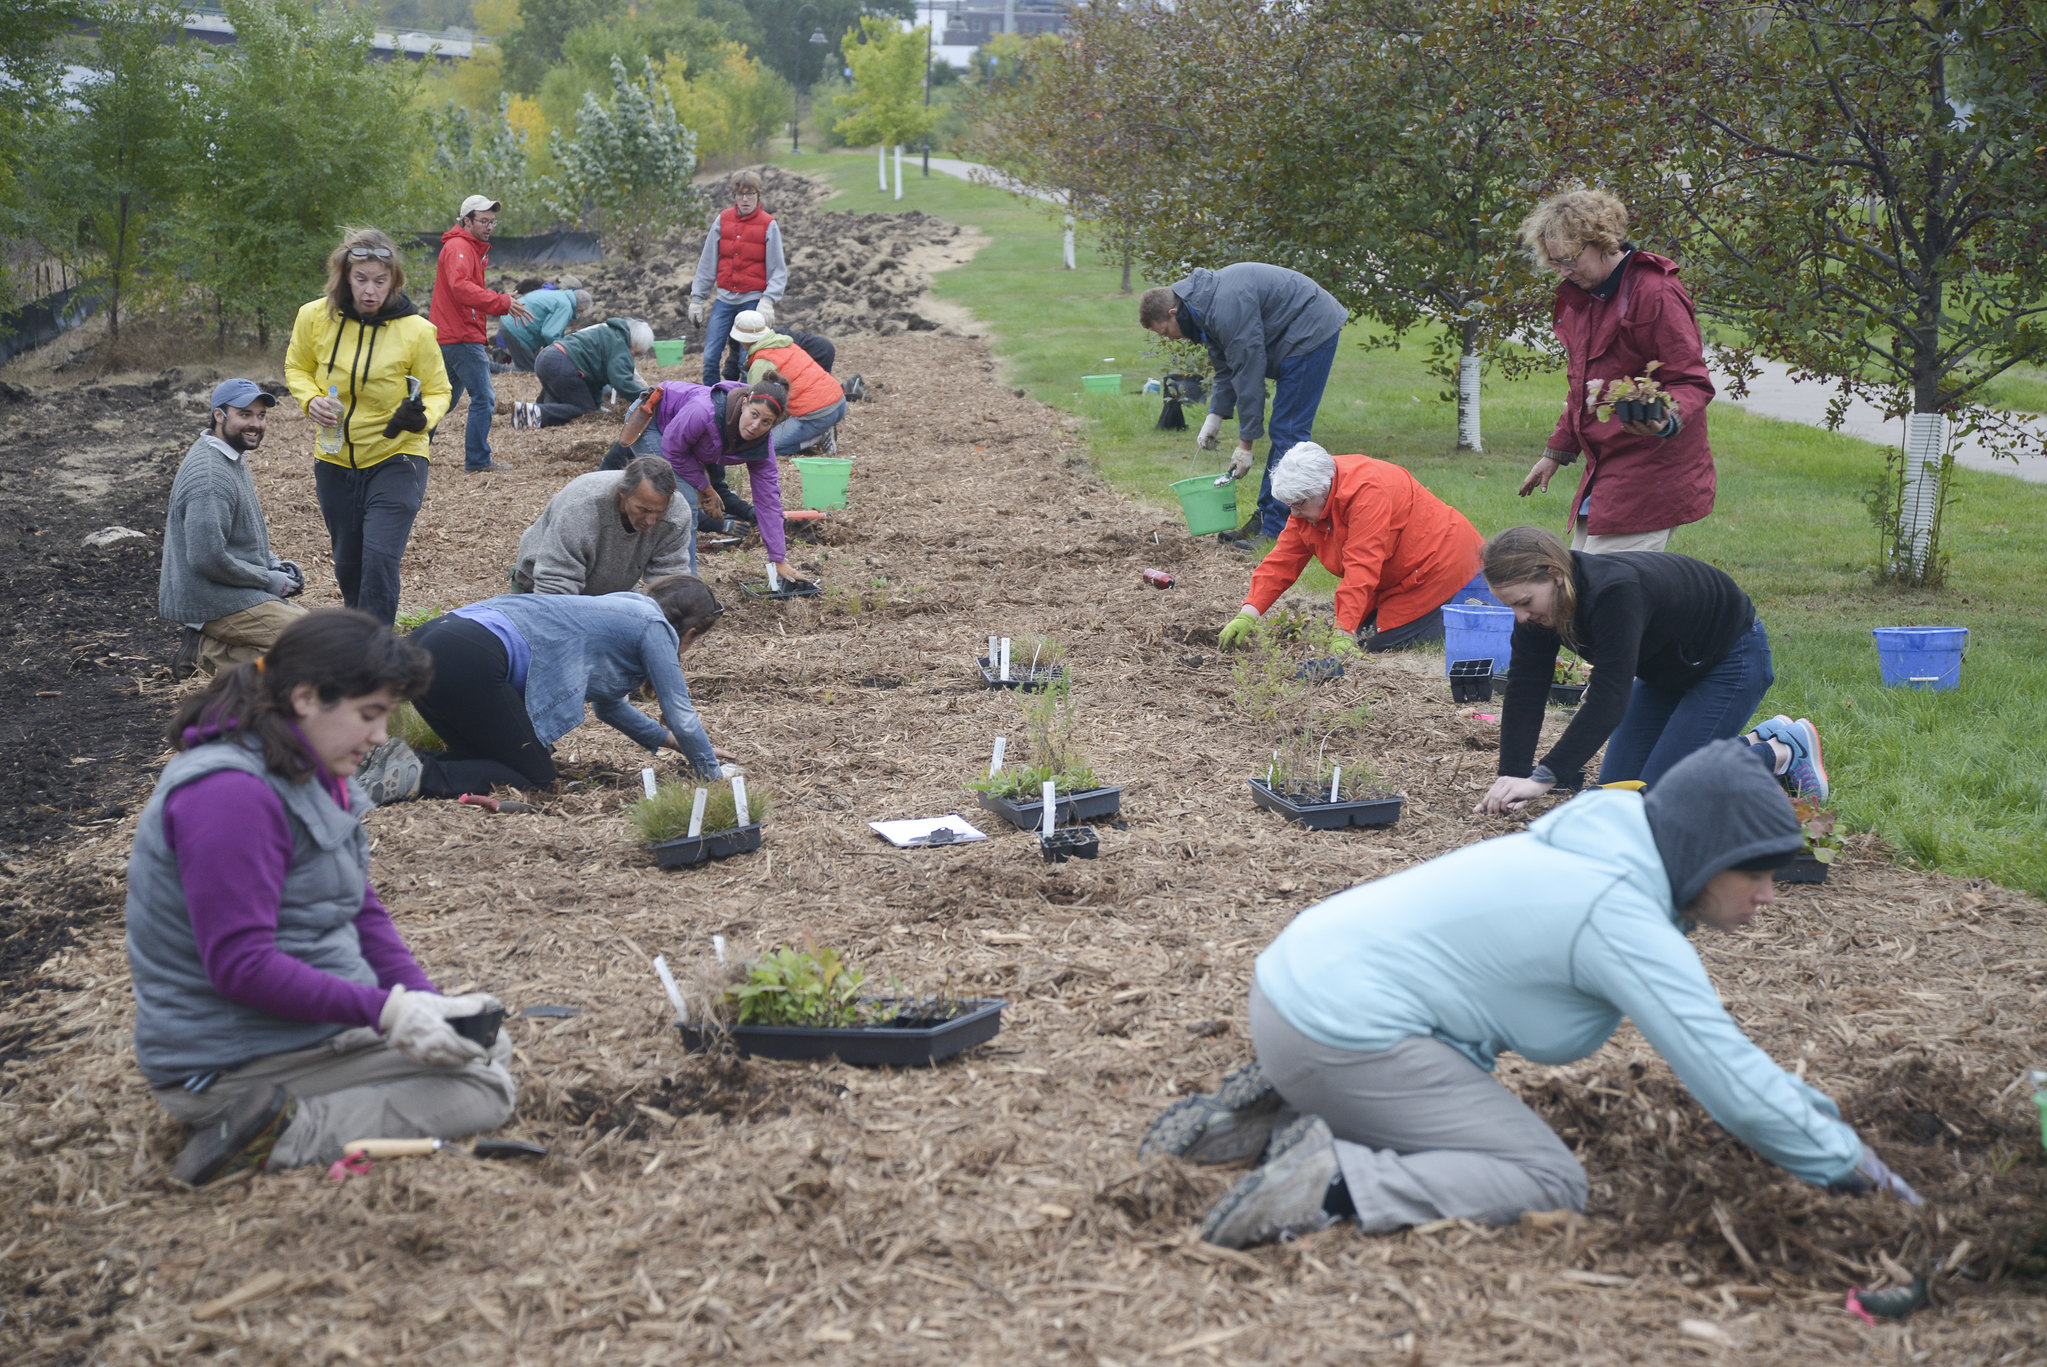 FMR Planting of Ole Olson Park (credit: Minneapolis Park and Recreation Board)